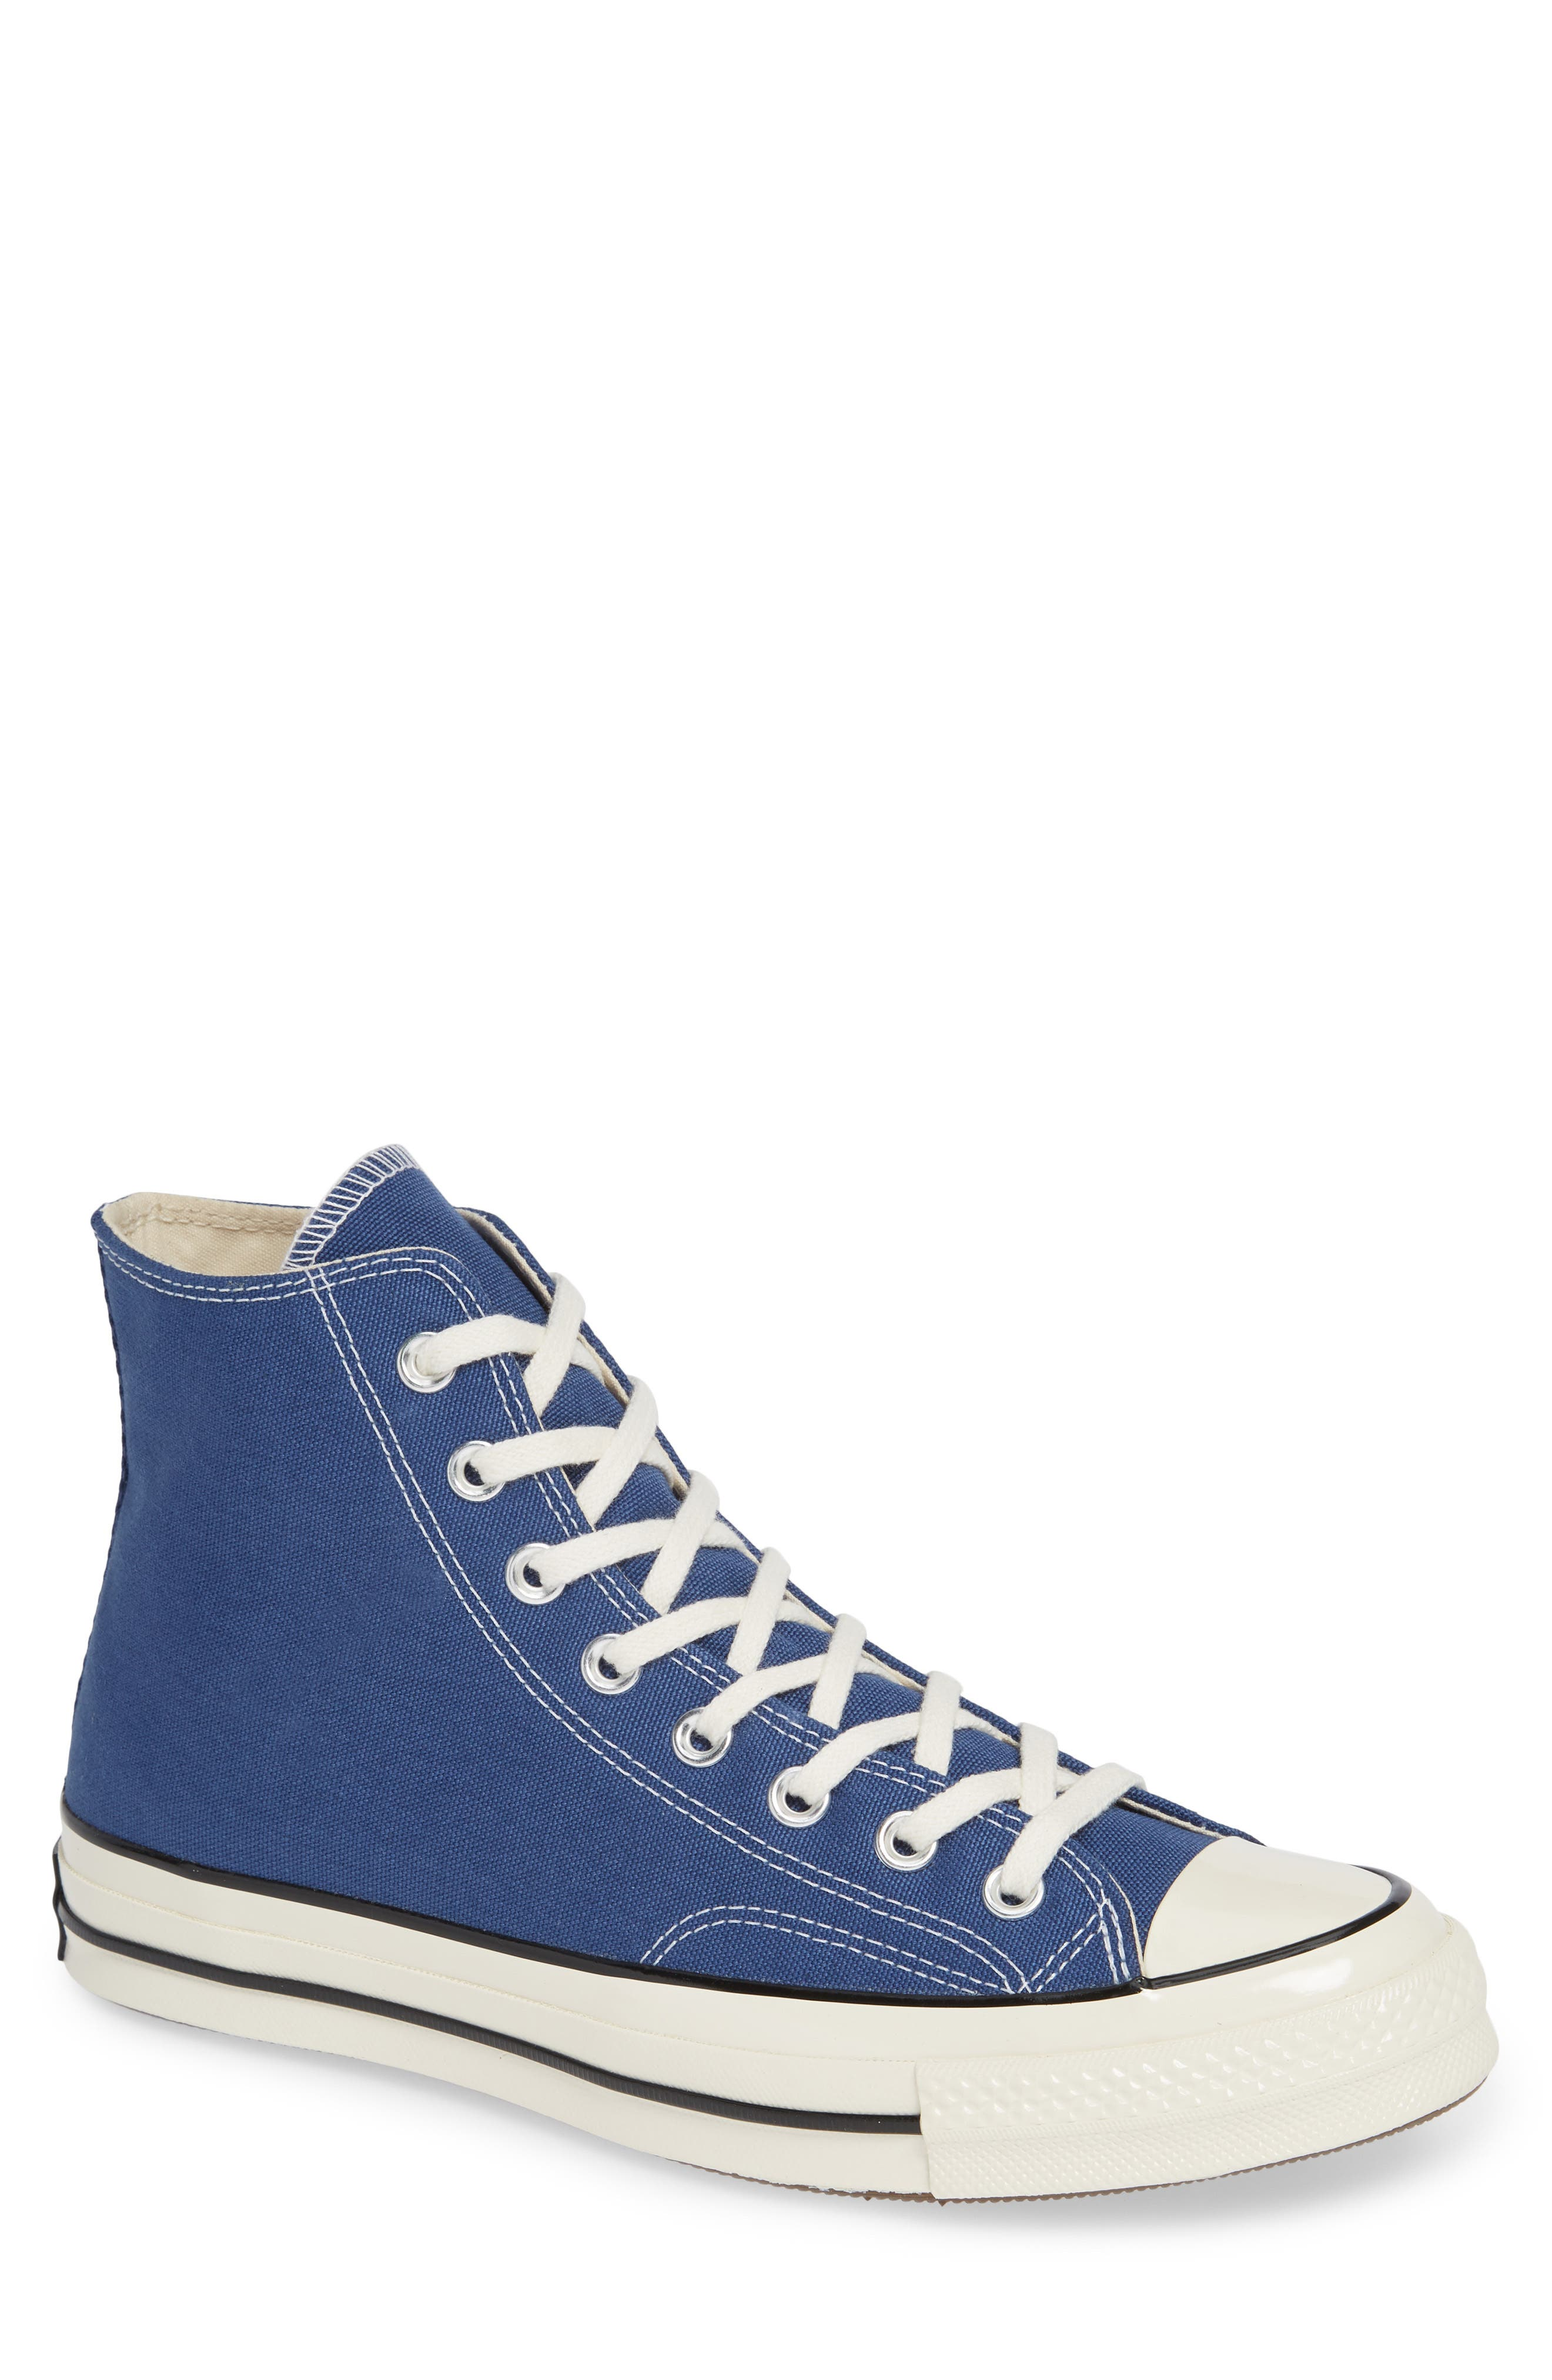 Chuck Taylor<sup>®</sup> All Star<sup>®</sup> 70 Vintage High Top Sneaker,                             Main thumbnail 1, color,                             TRUE NAVY/ BLACK